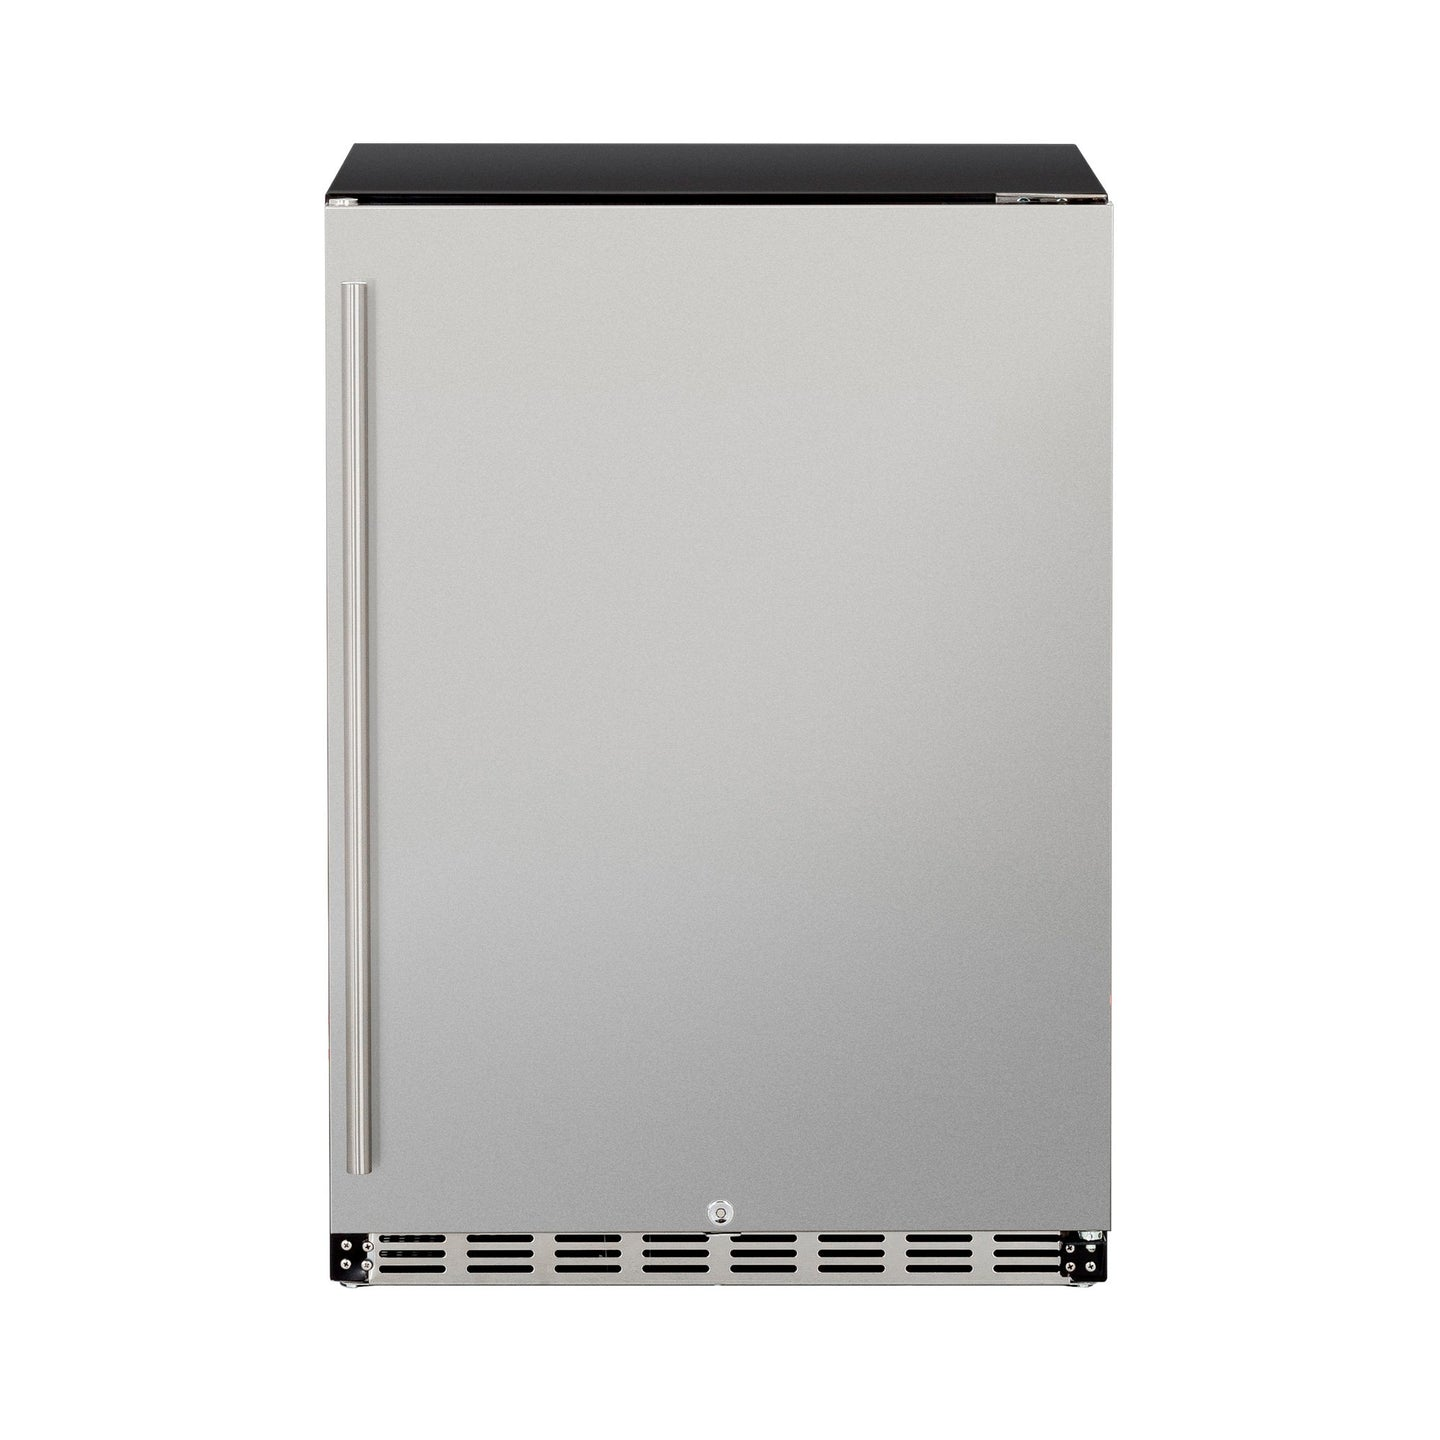 5.3c Outdoor Rated Fridge [Summerset]